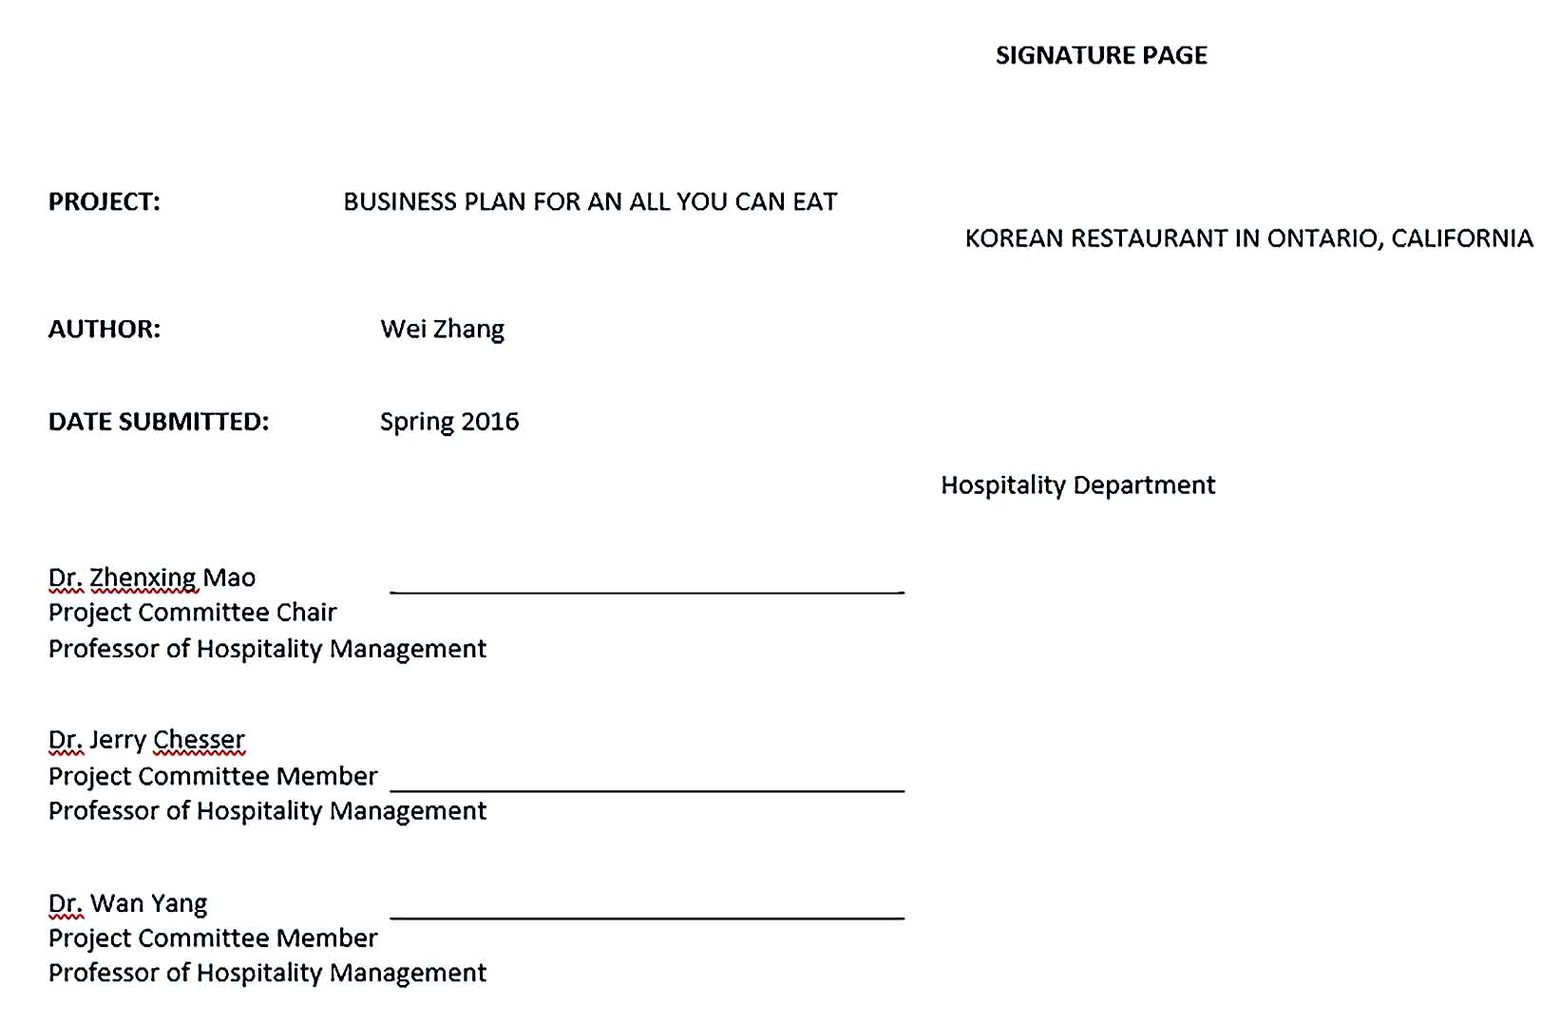 all you can eat restaurant business plan